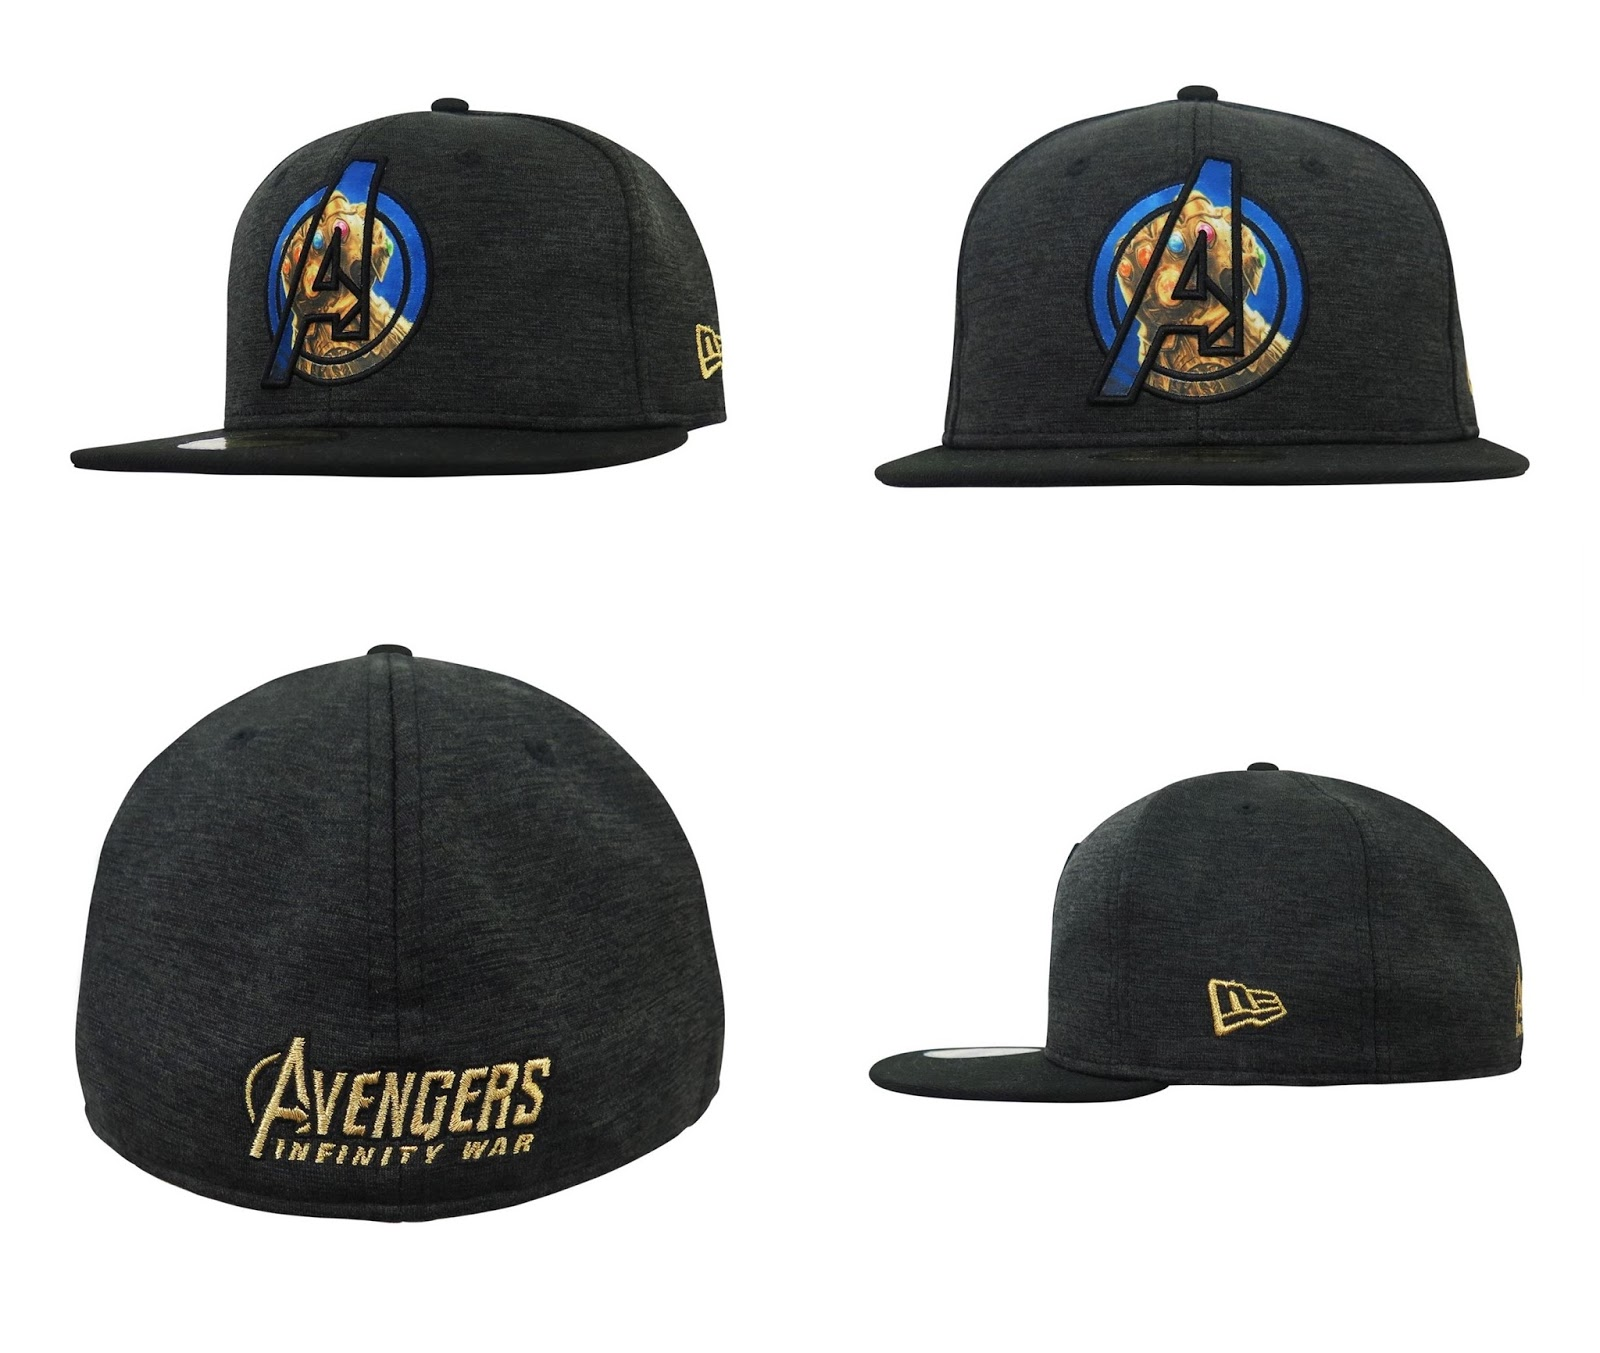 6d5739fe0d6 Avengers  Infinity War 59Fifty Fitted Hat Collection by New Era Cap x Marvel